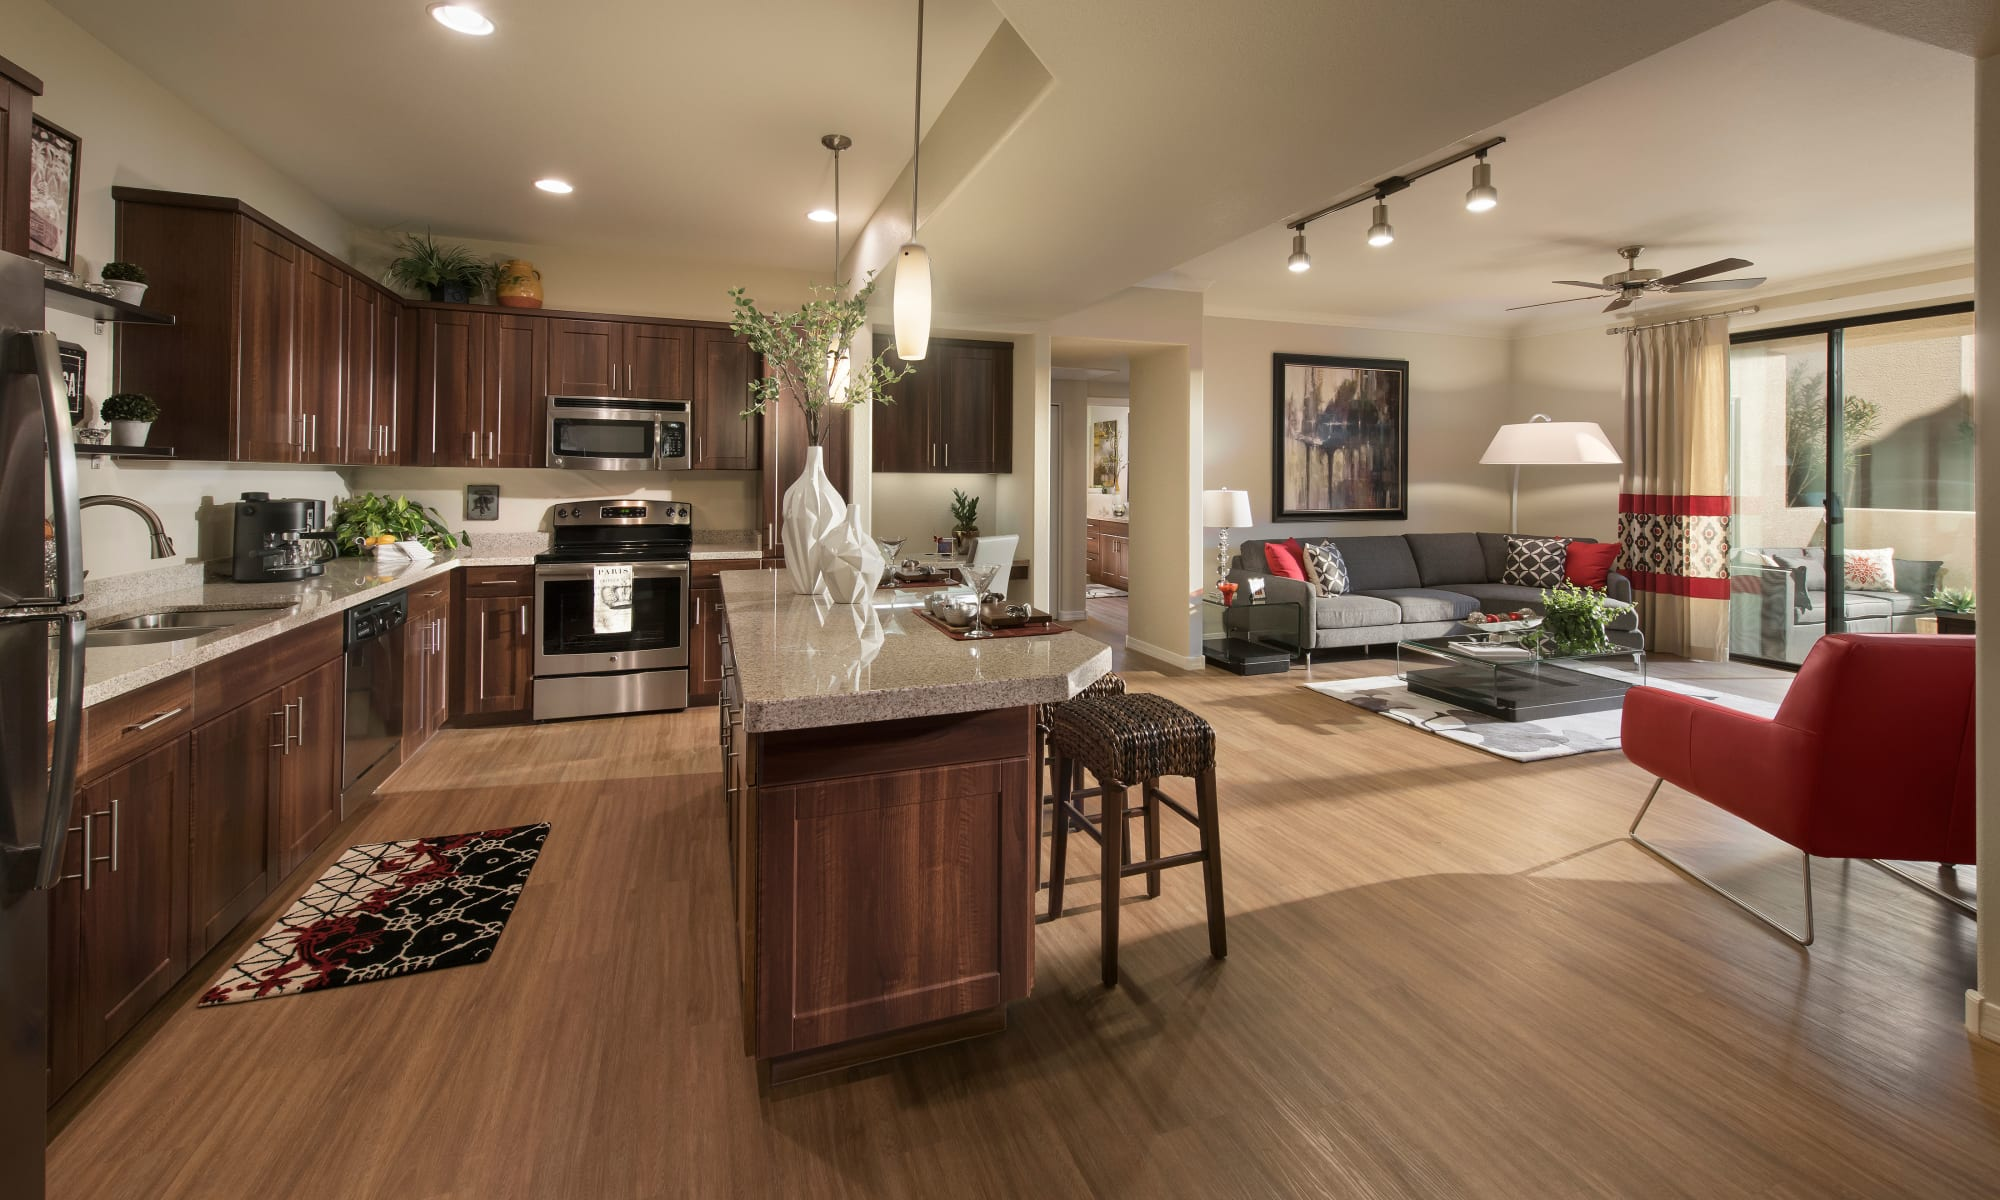 Luxury kitchen at San Travesia in Scottsdale, Arizona